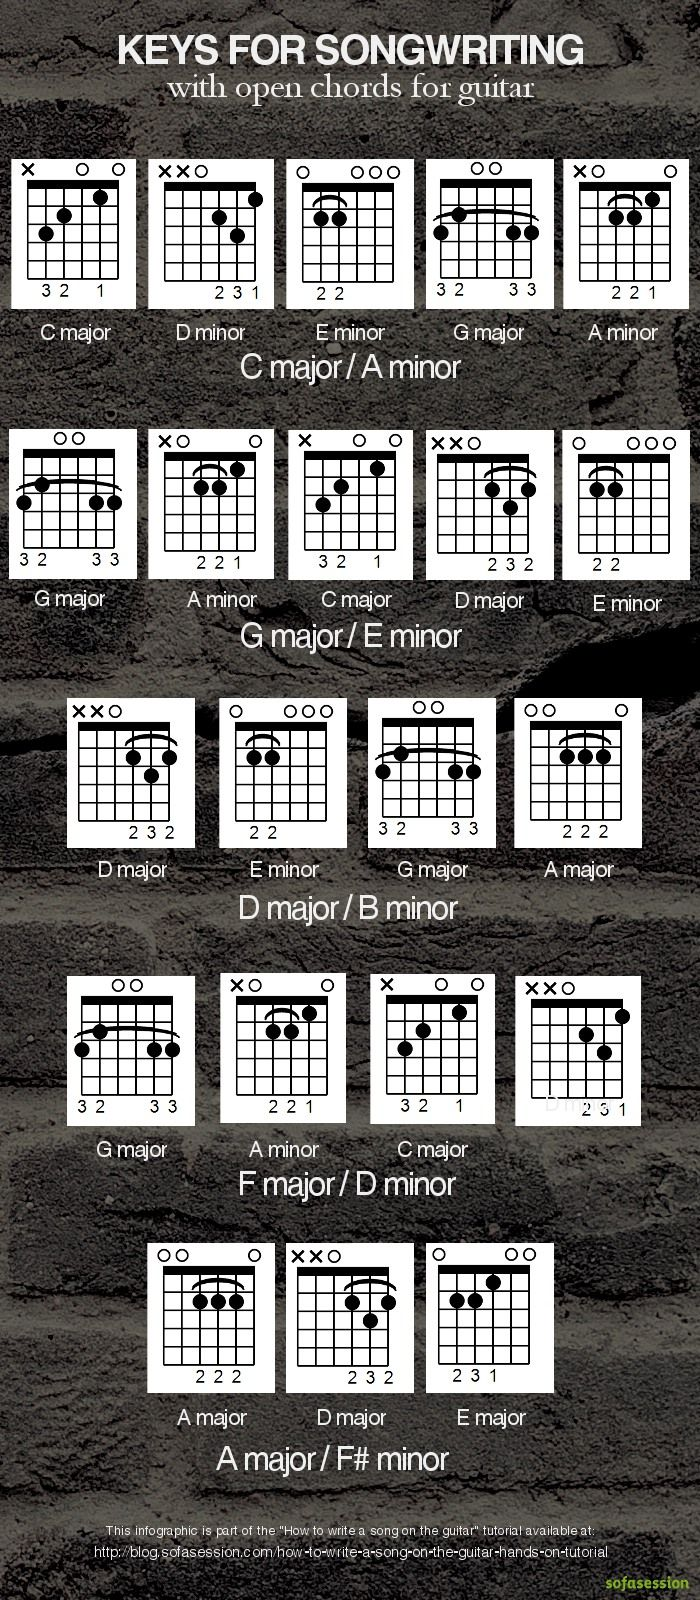 keys with open chords for guitar songwriting.jpg 15×15 ...